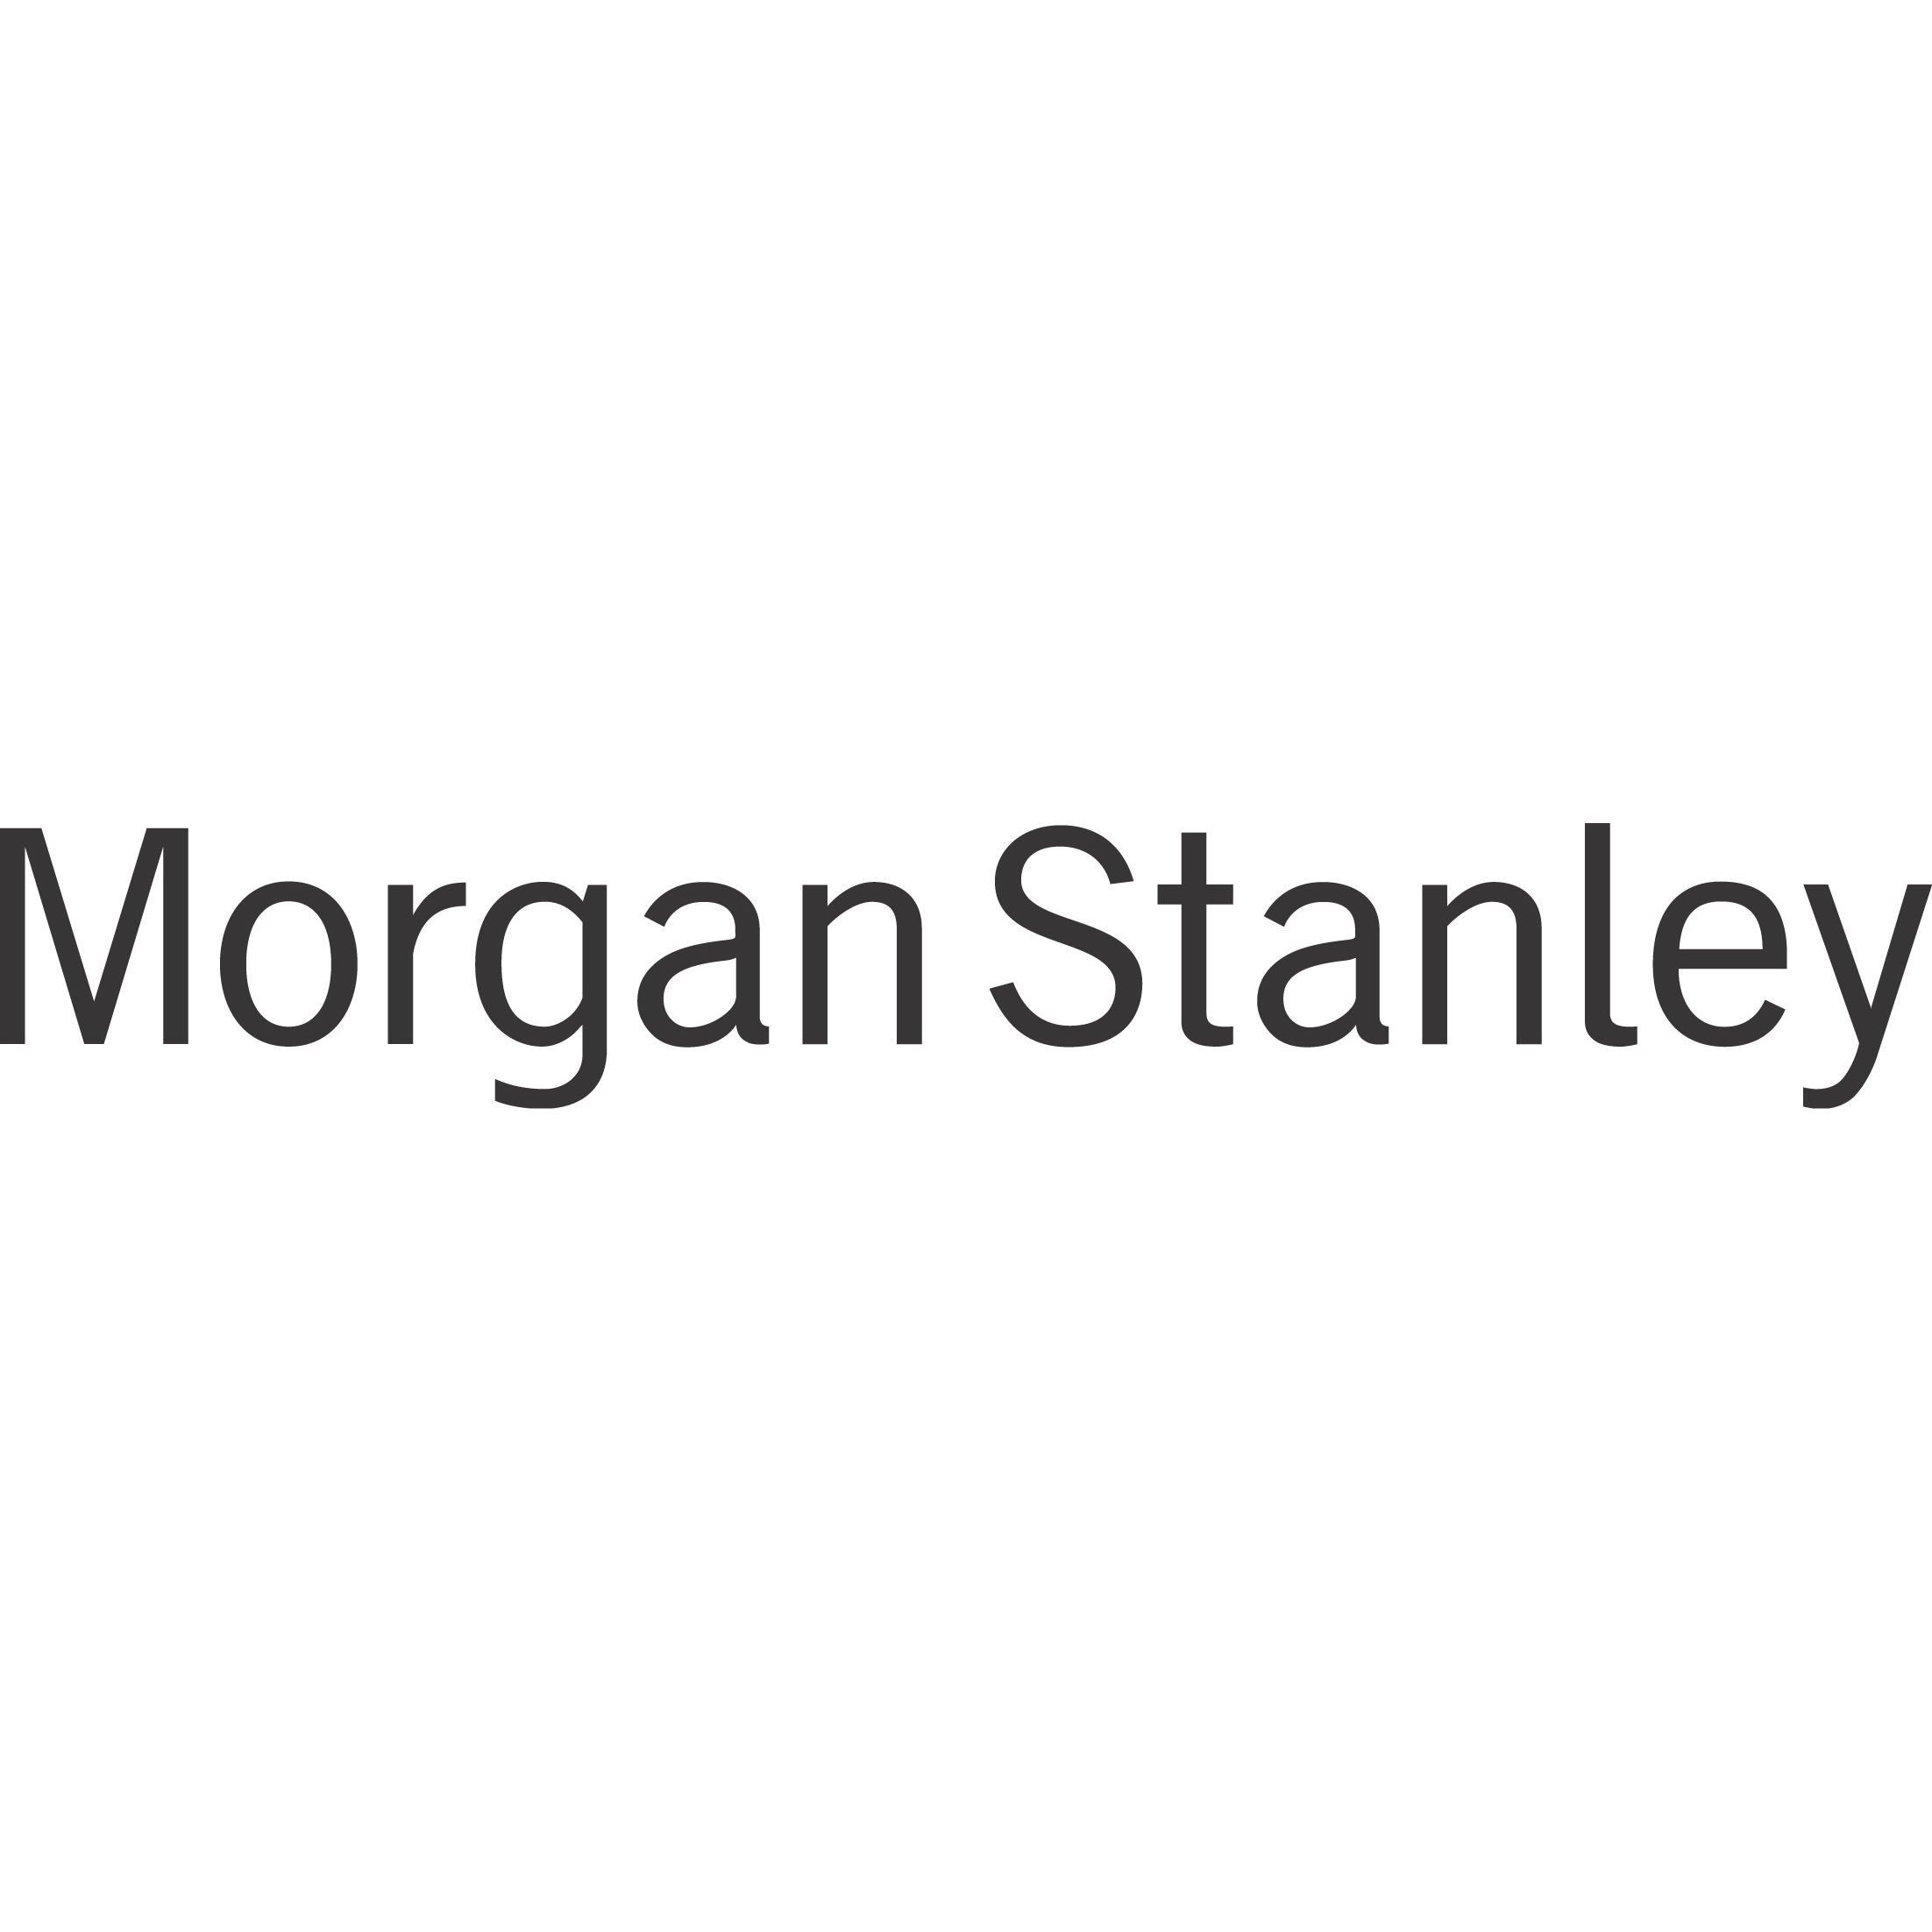 Eric A Kitchell - Morgan Stanley | Financial Advisor in Orland Park,Illinois